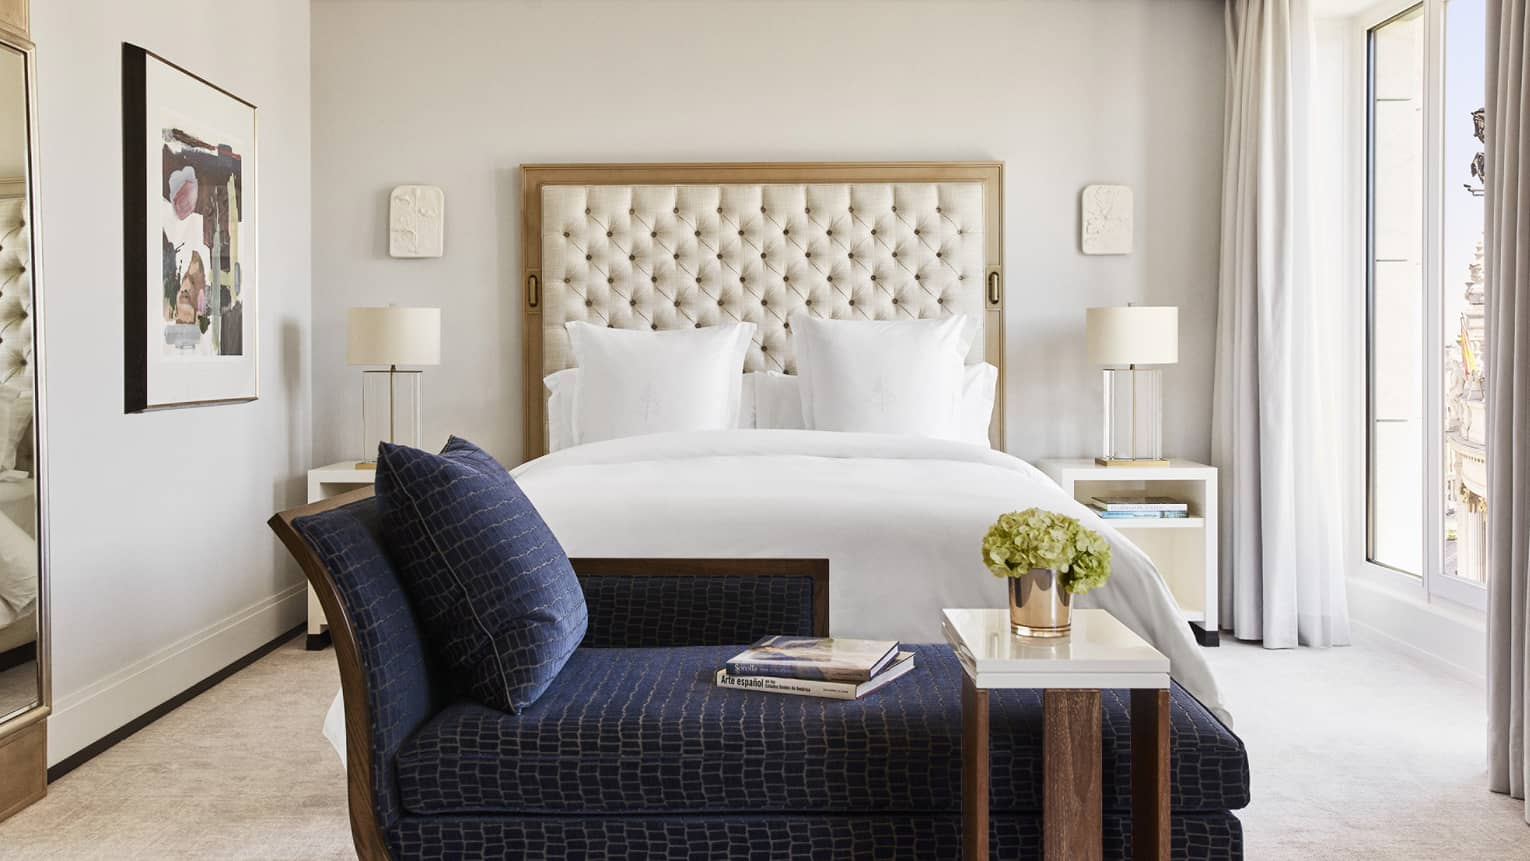 Bedroom with king bed, tufted headboard, dark blue chaise lounge at foot of bed, white ceiling molding